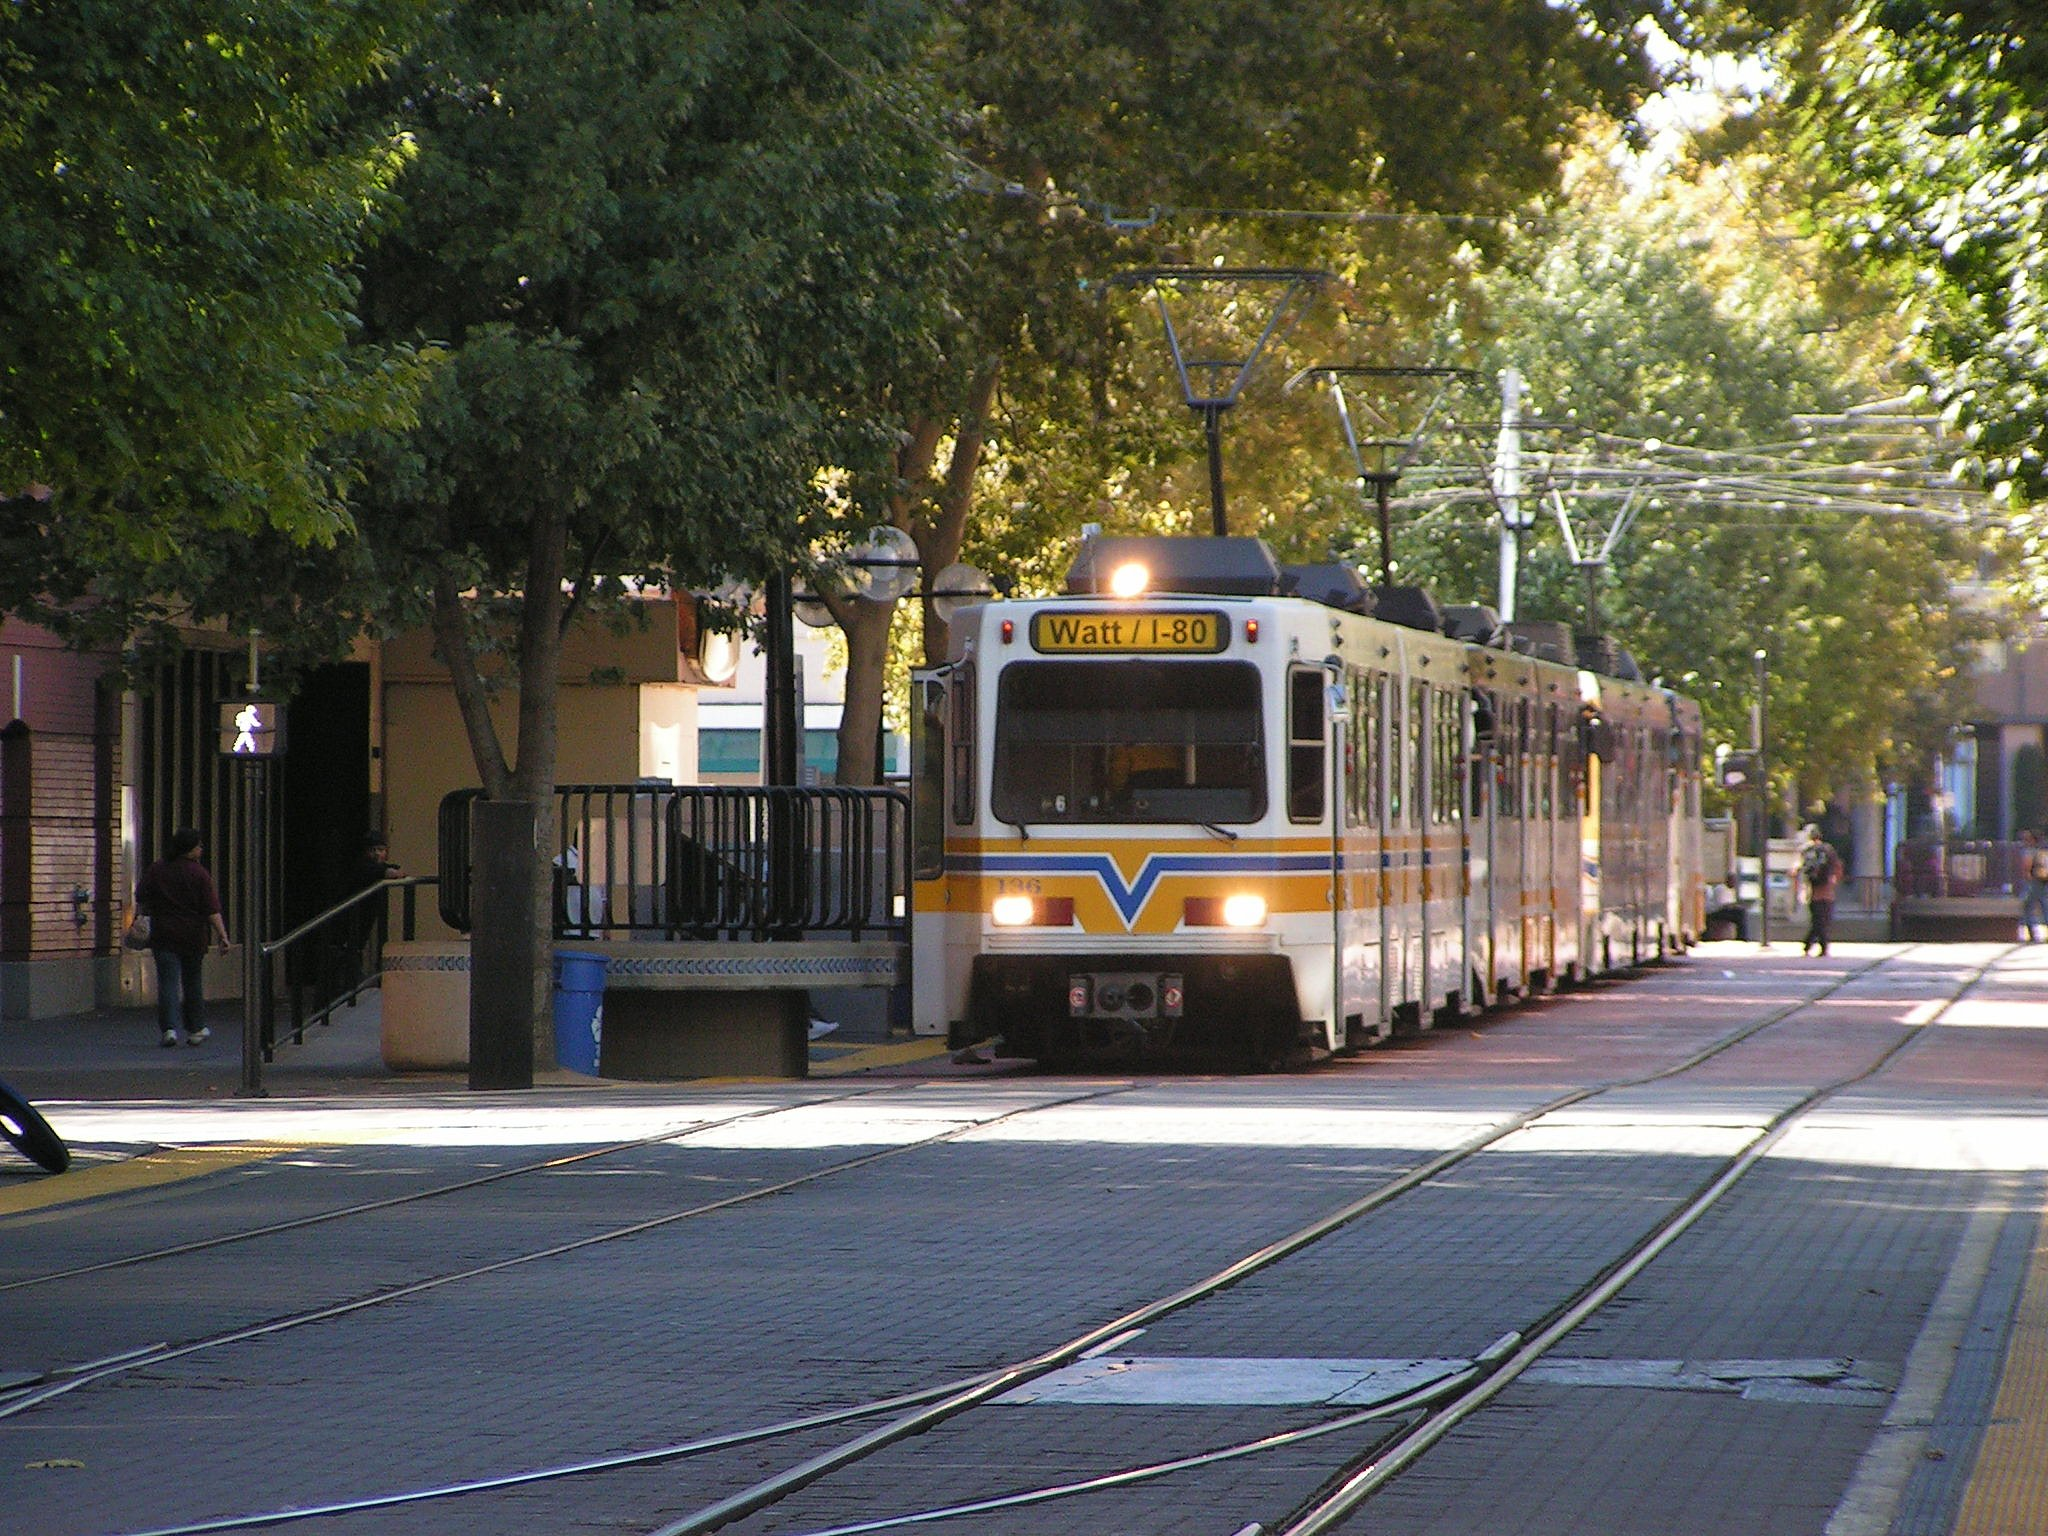 Sacramento's light rail will buy new vehicles with money from cap-and-trade proceeds. Image: Wikipedia